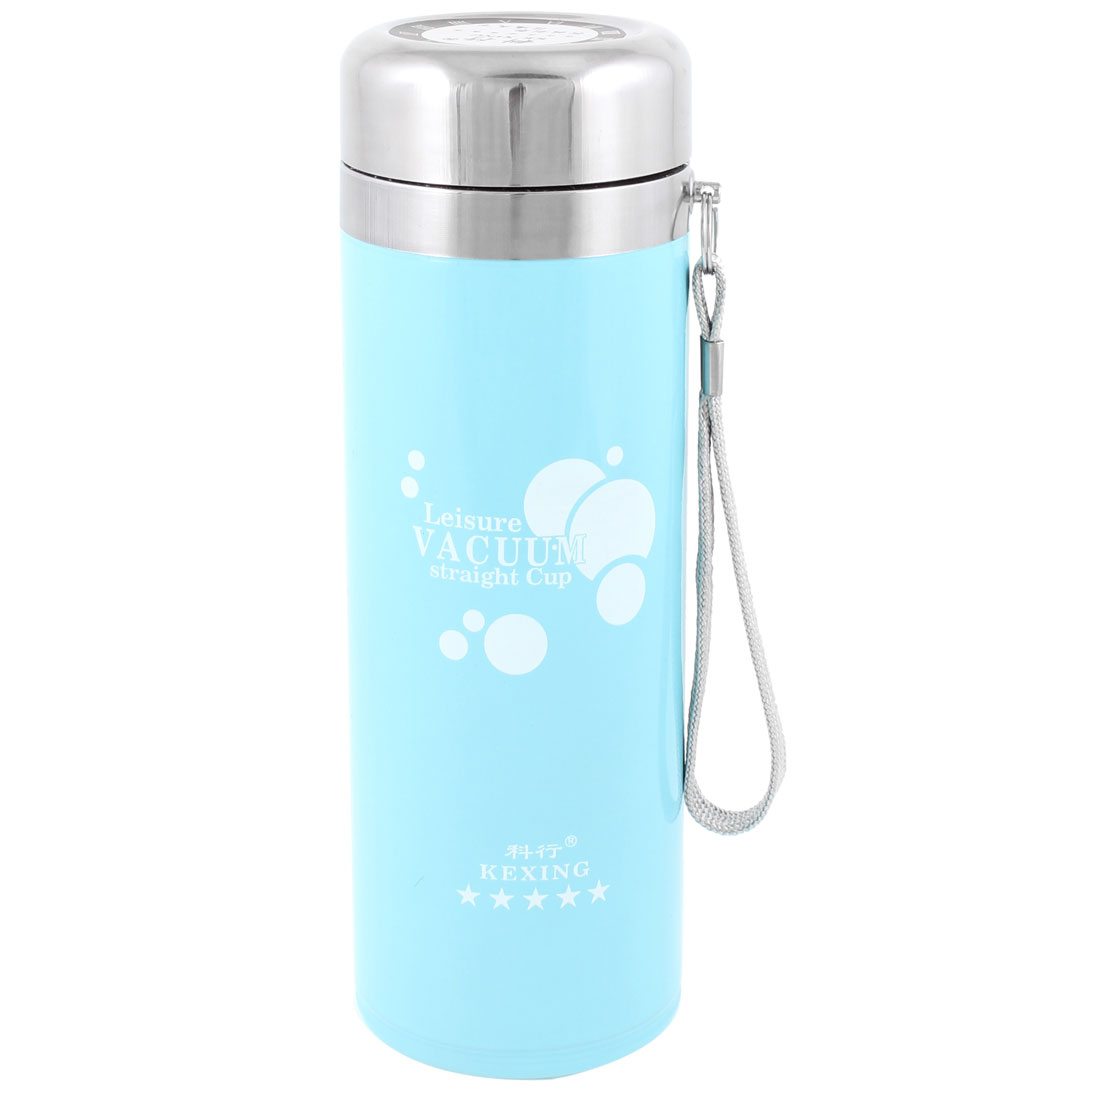 Home Office Blue Stainless Steel 280ml Water Vacuum Flask Bottle w Strap